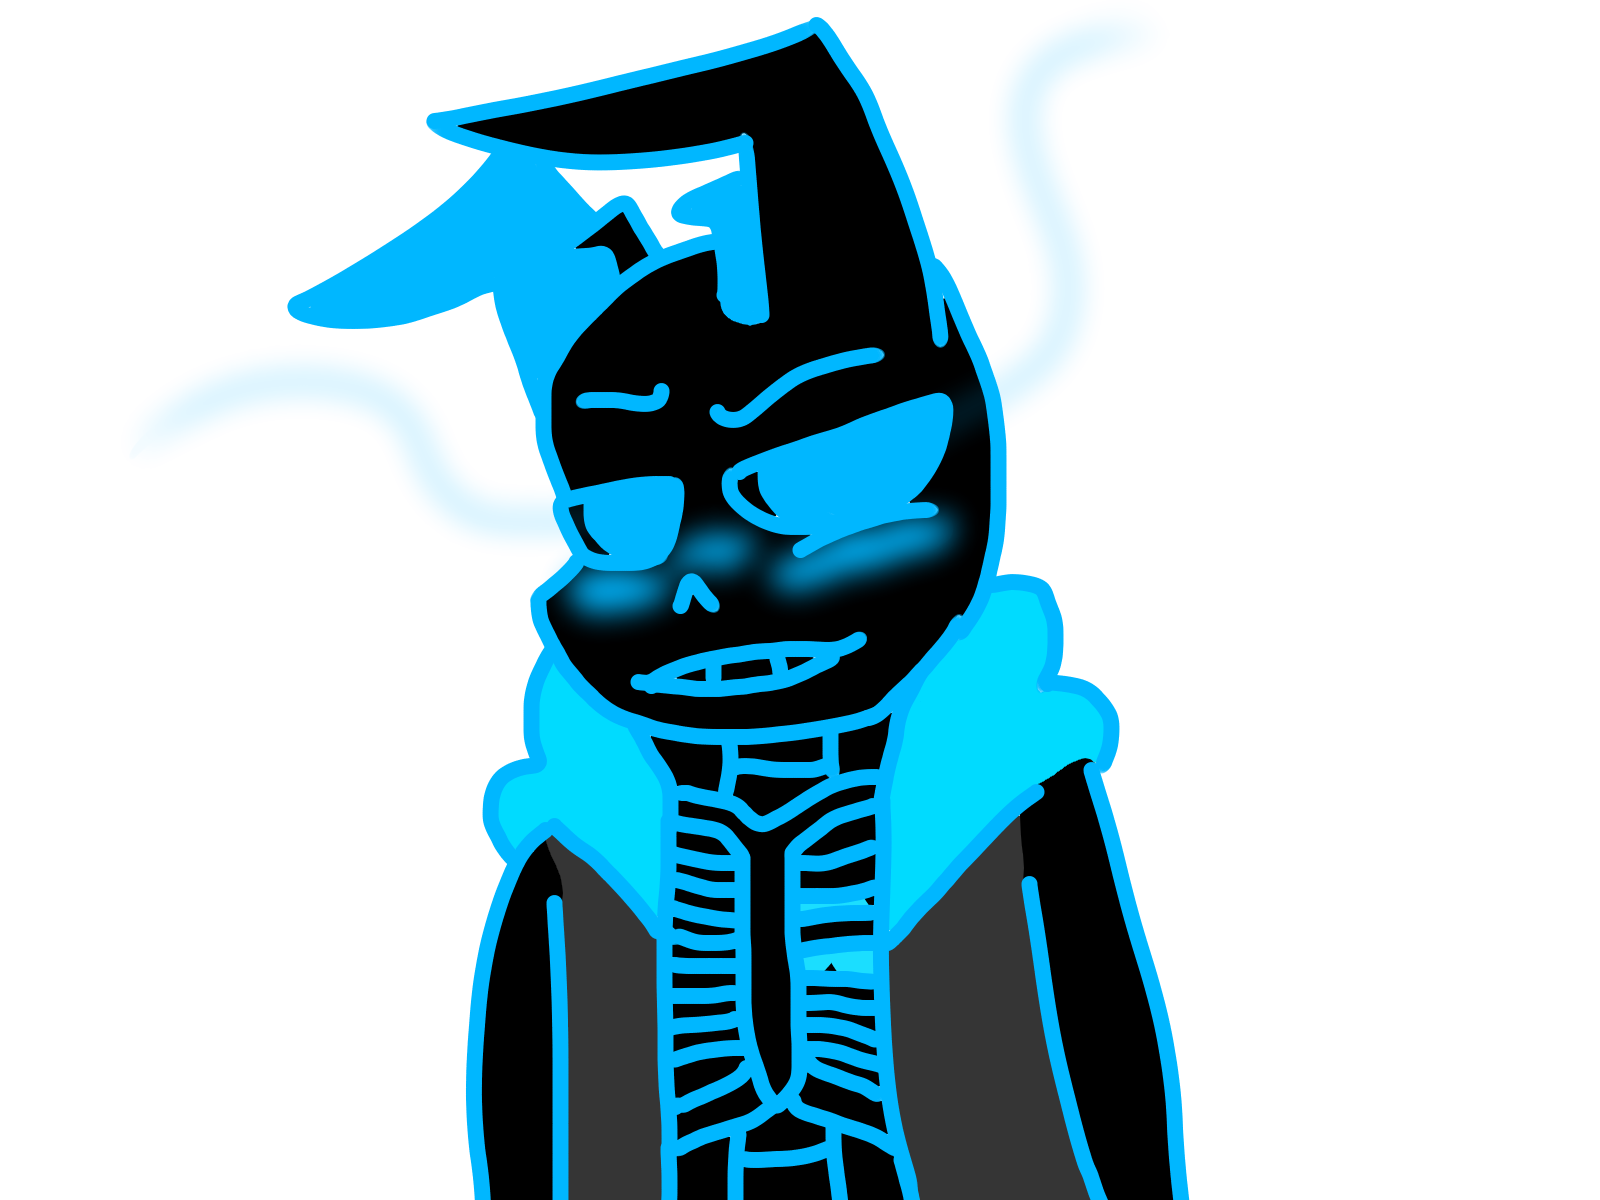 ikned_GIFT2.png